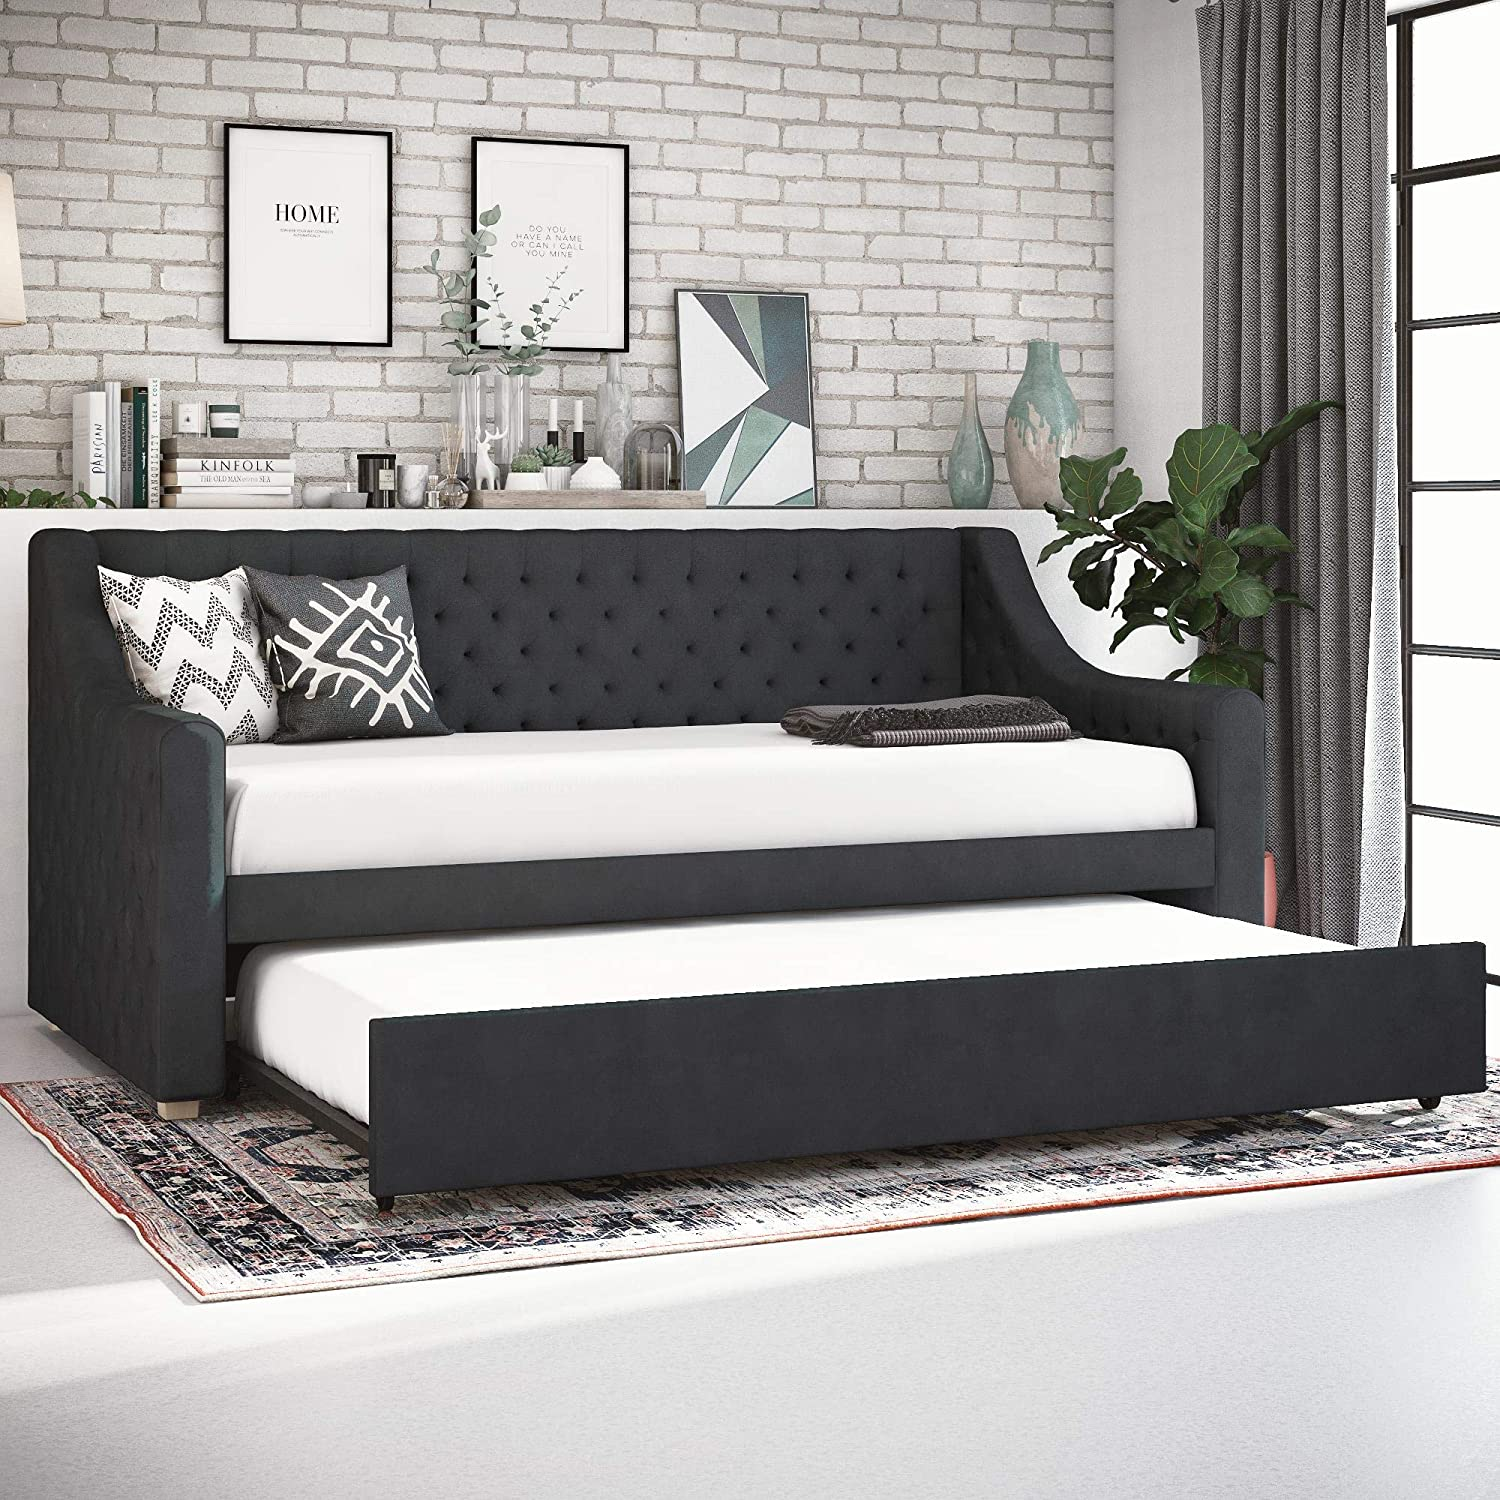 CosmoLiving Nolita Upholstered Daybed and Trundle – Twin – Gray